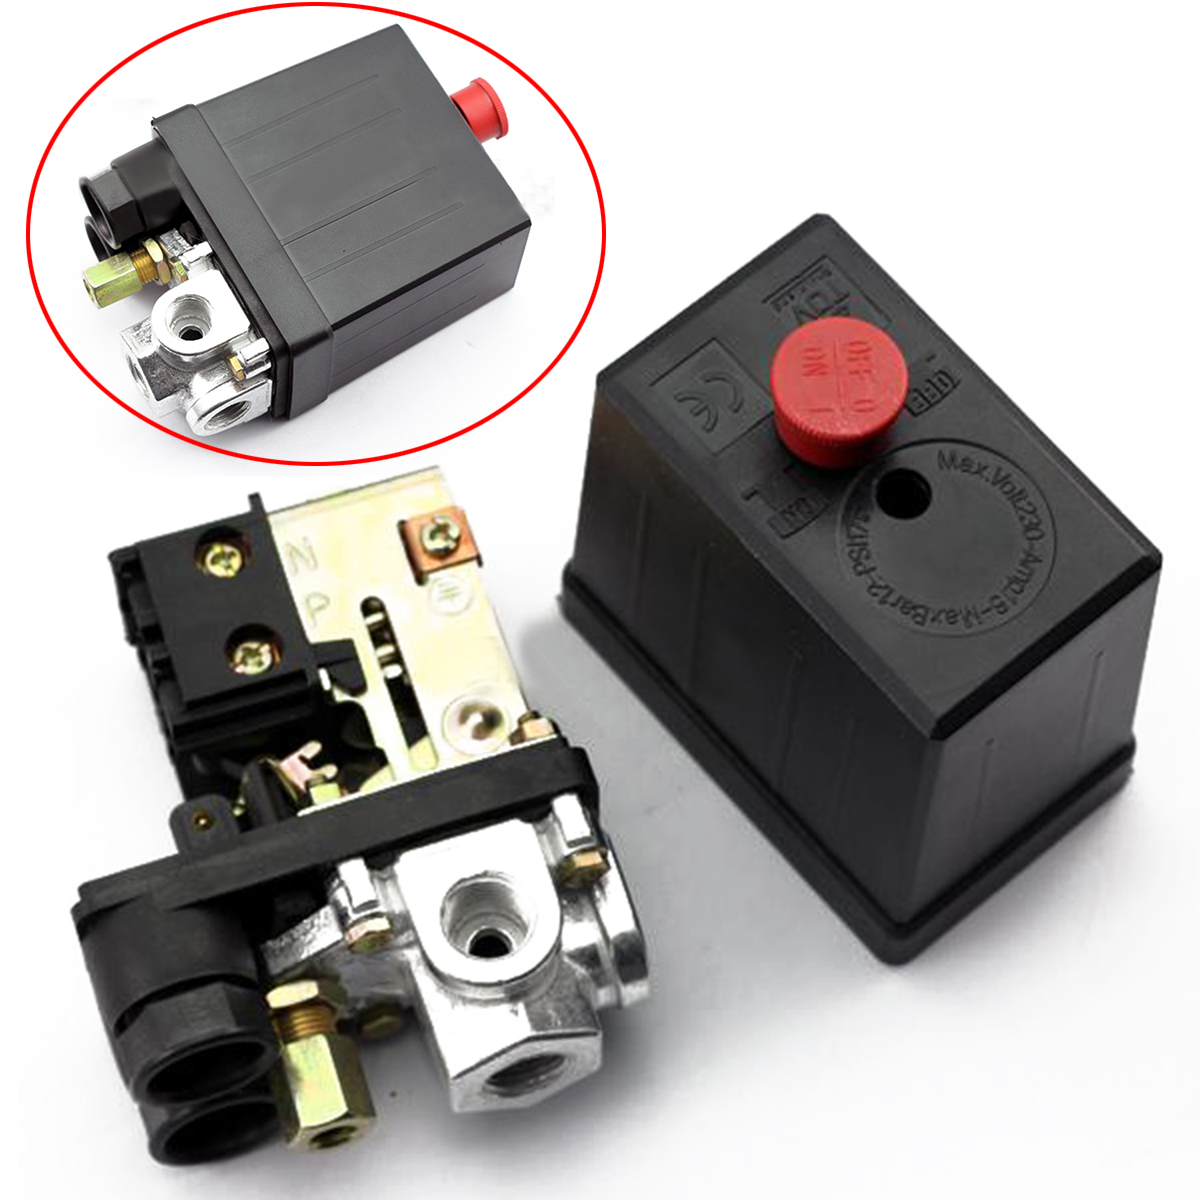 High Quality Durable Mayitr Air Compressor Pressure Switch 240V 16A 90 PSI -120 PSI Heavy Duty Red ON/OFF Switch Control Valve new 90 psi 120 psi air compressor pressure control switch valve heavy duty g205m best quality